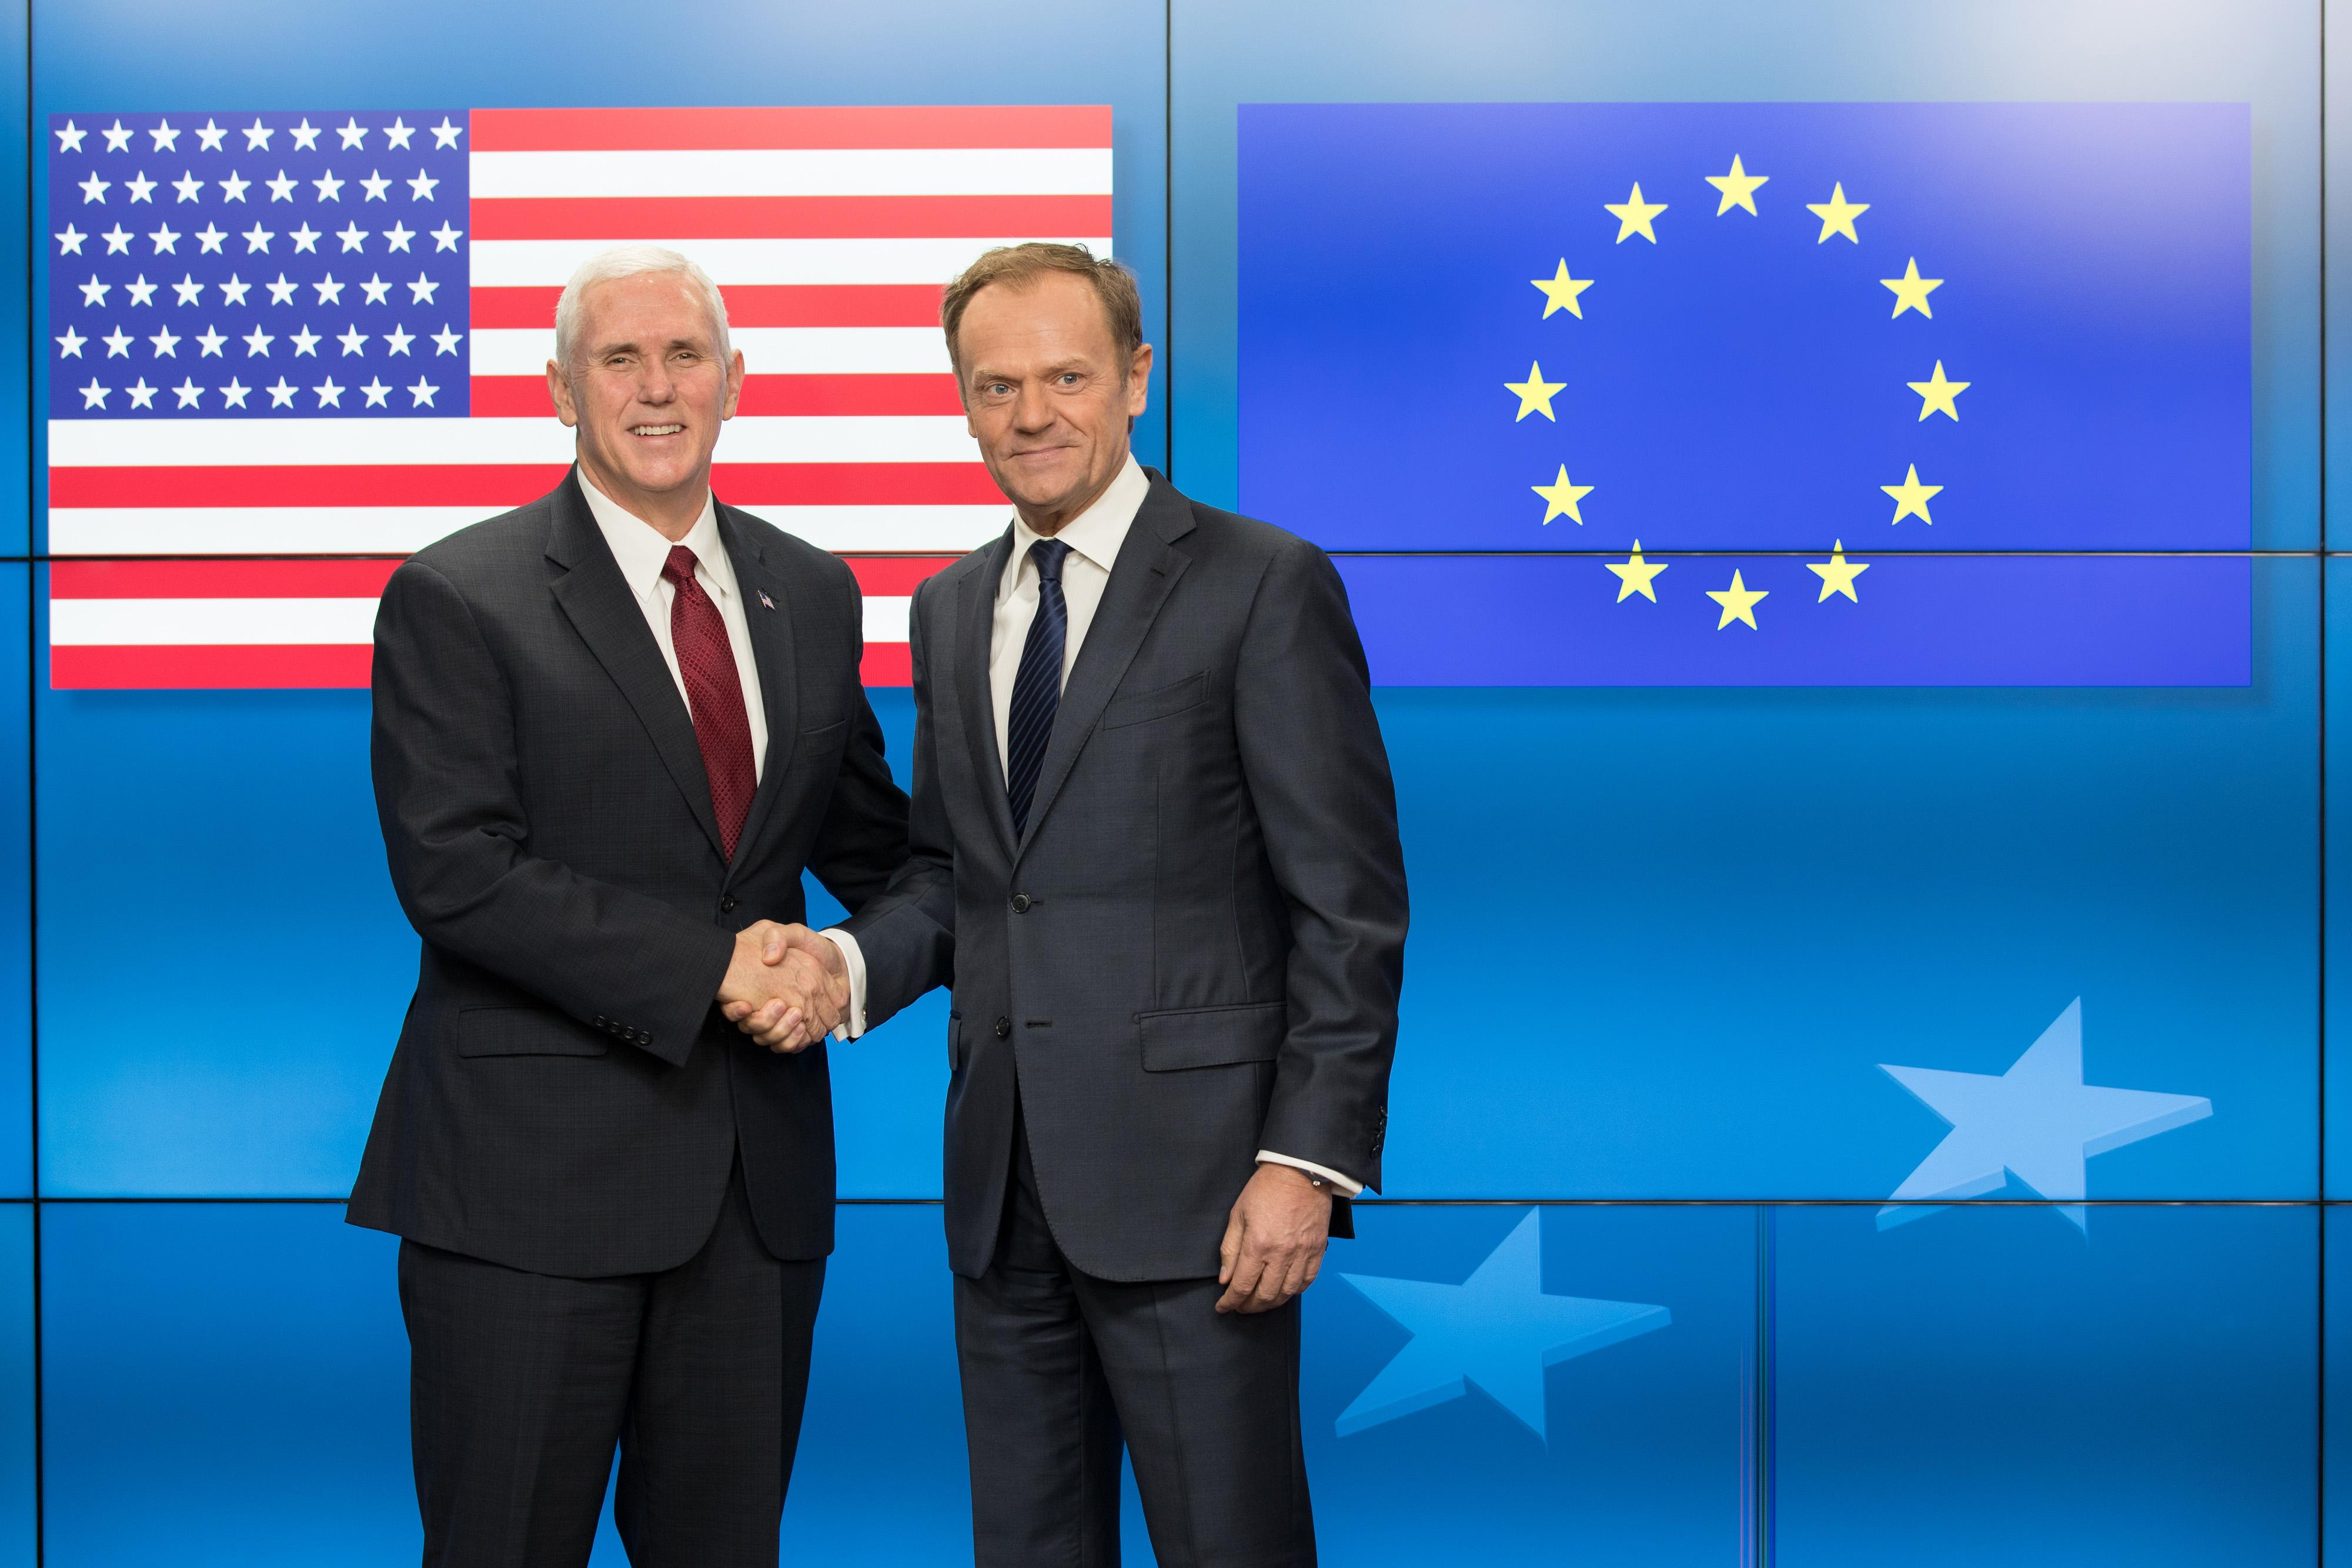 Pence arrives in Brussels for talks with EU officials